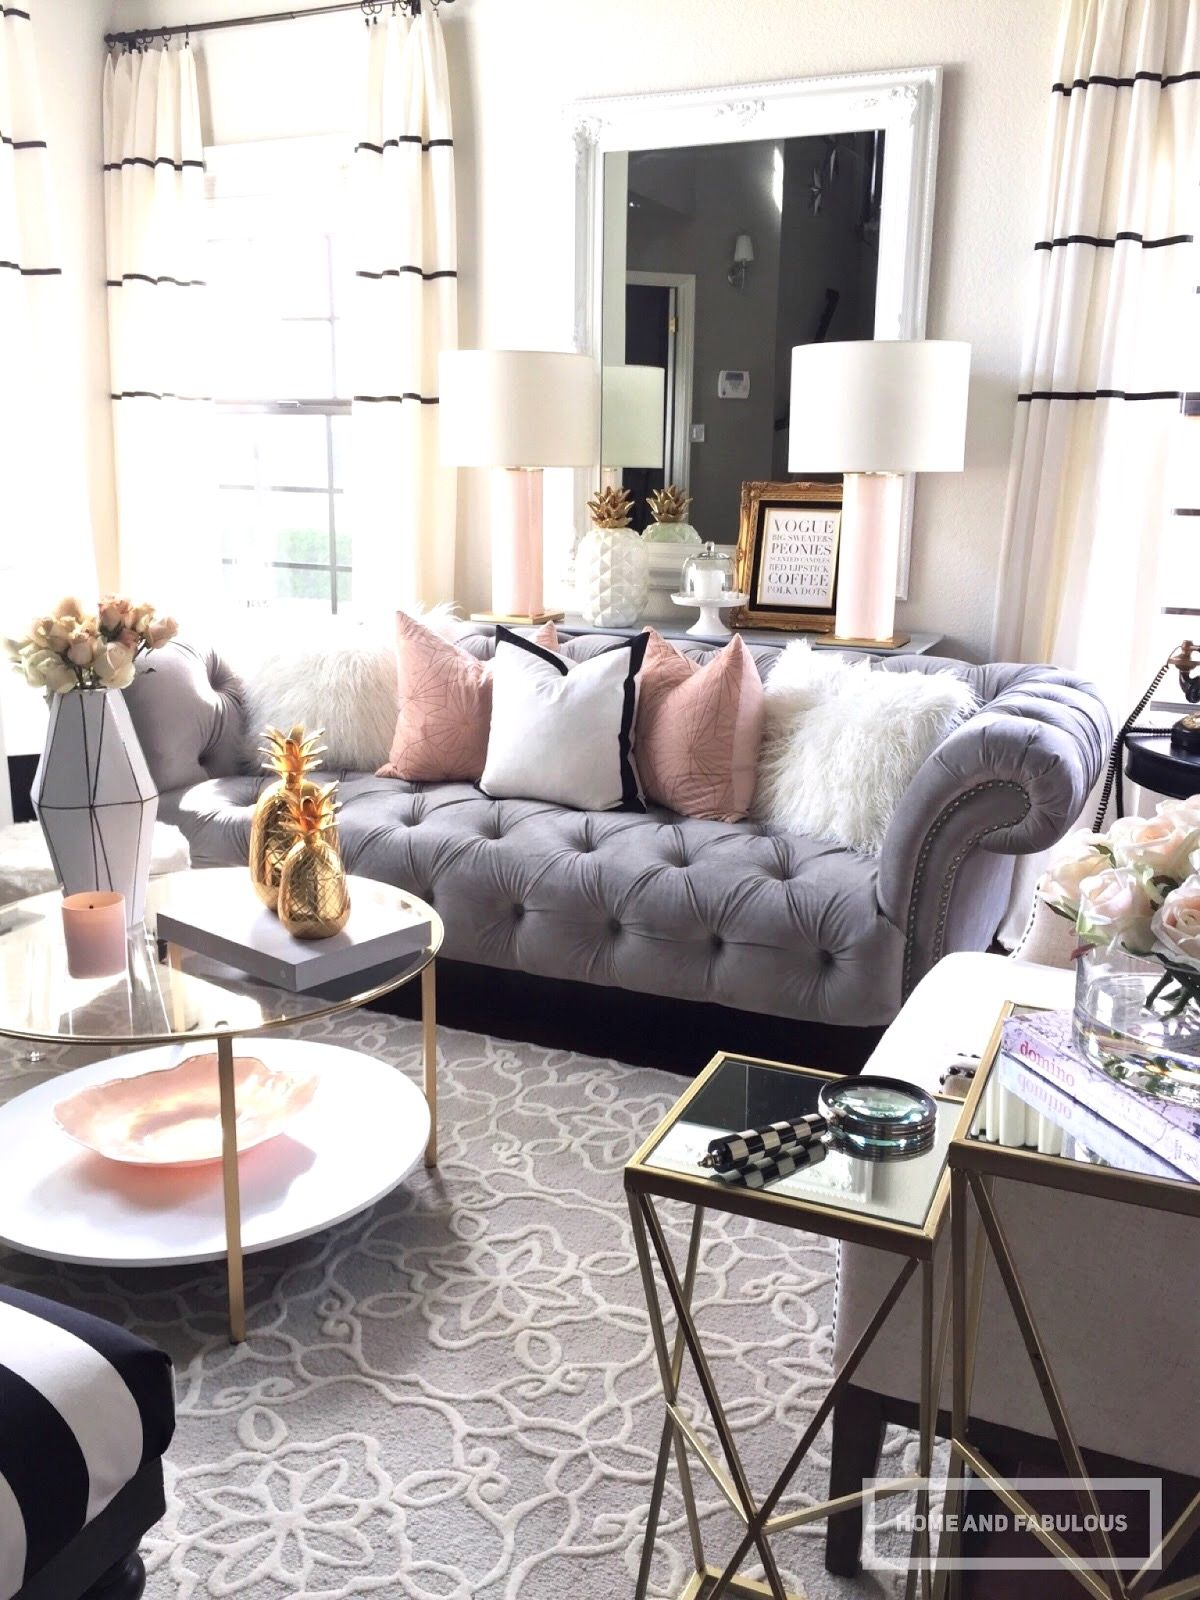 one sofa living room ideas best ceiling lights for in india how couch inspired a transformation rooms decor grey